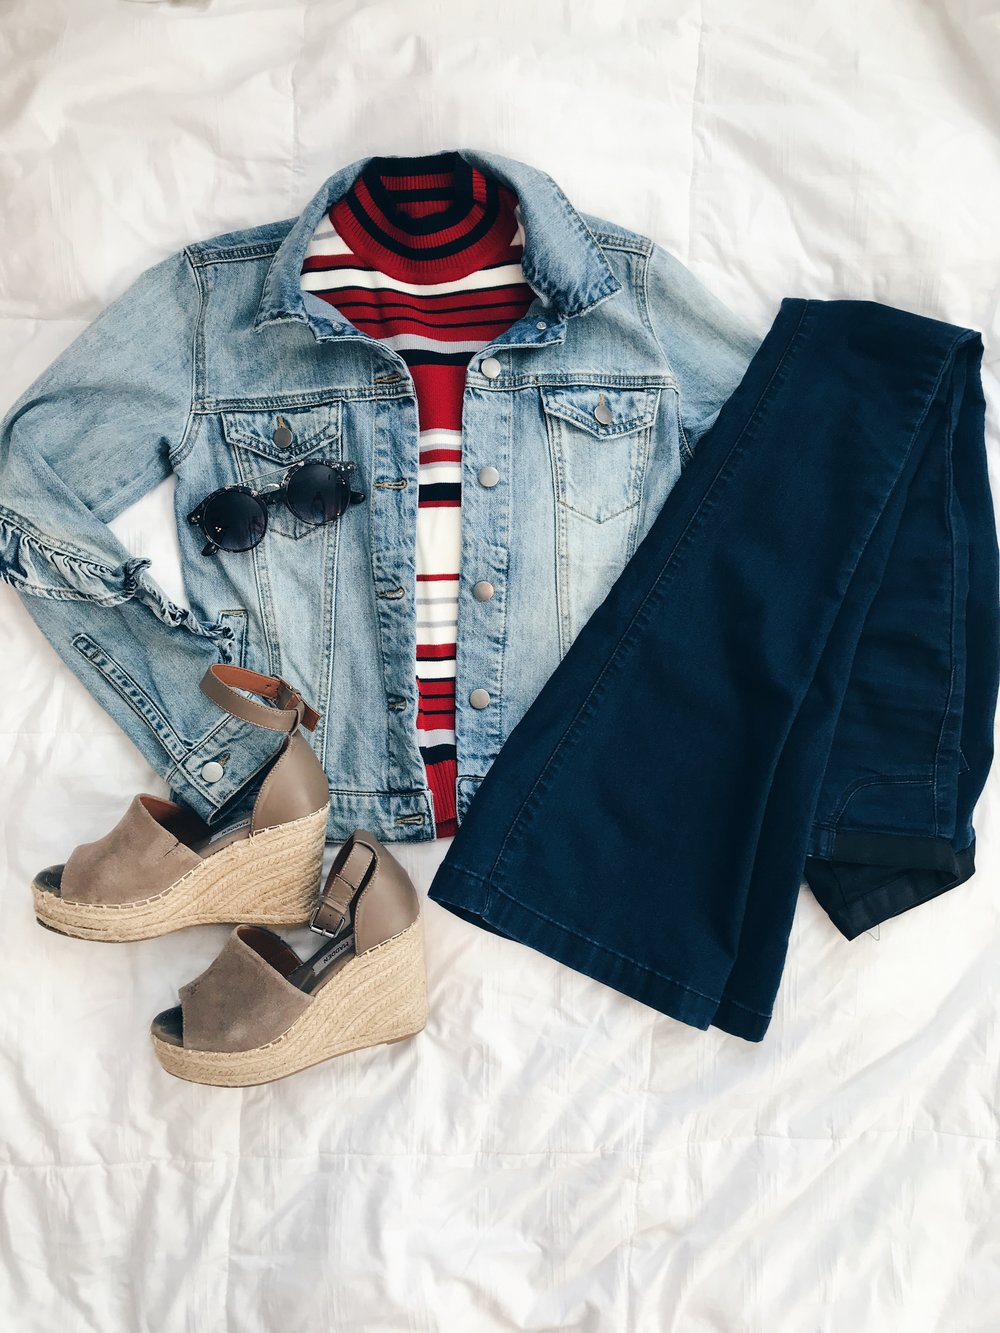 - Striped Top || Jean Jacket || Flared Jeans || Wedges || Sunglasses*Use the code TRENDY15 at RaeLynn's Boutique.